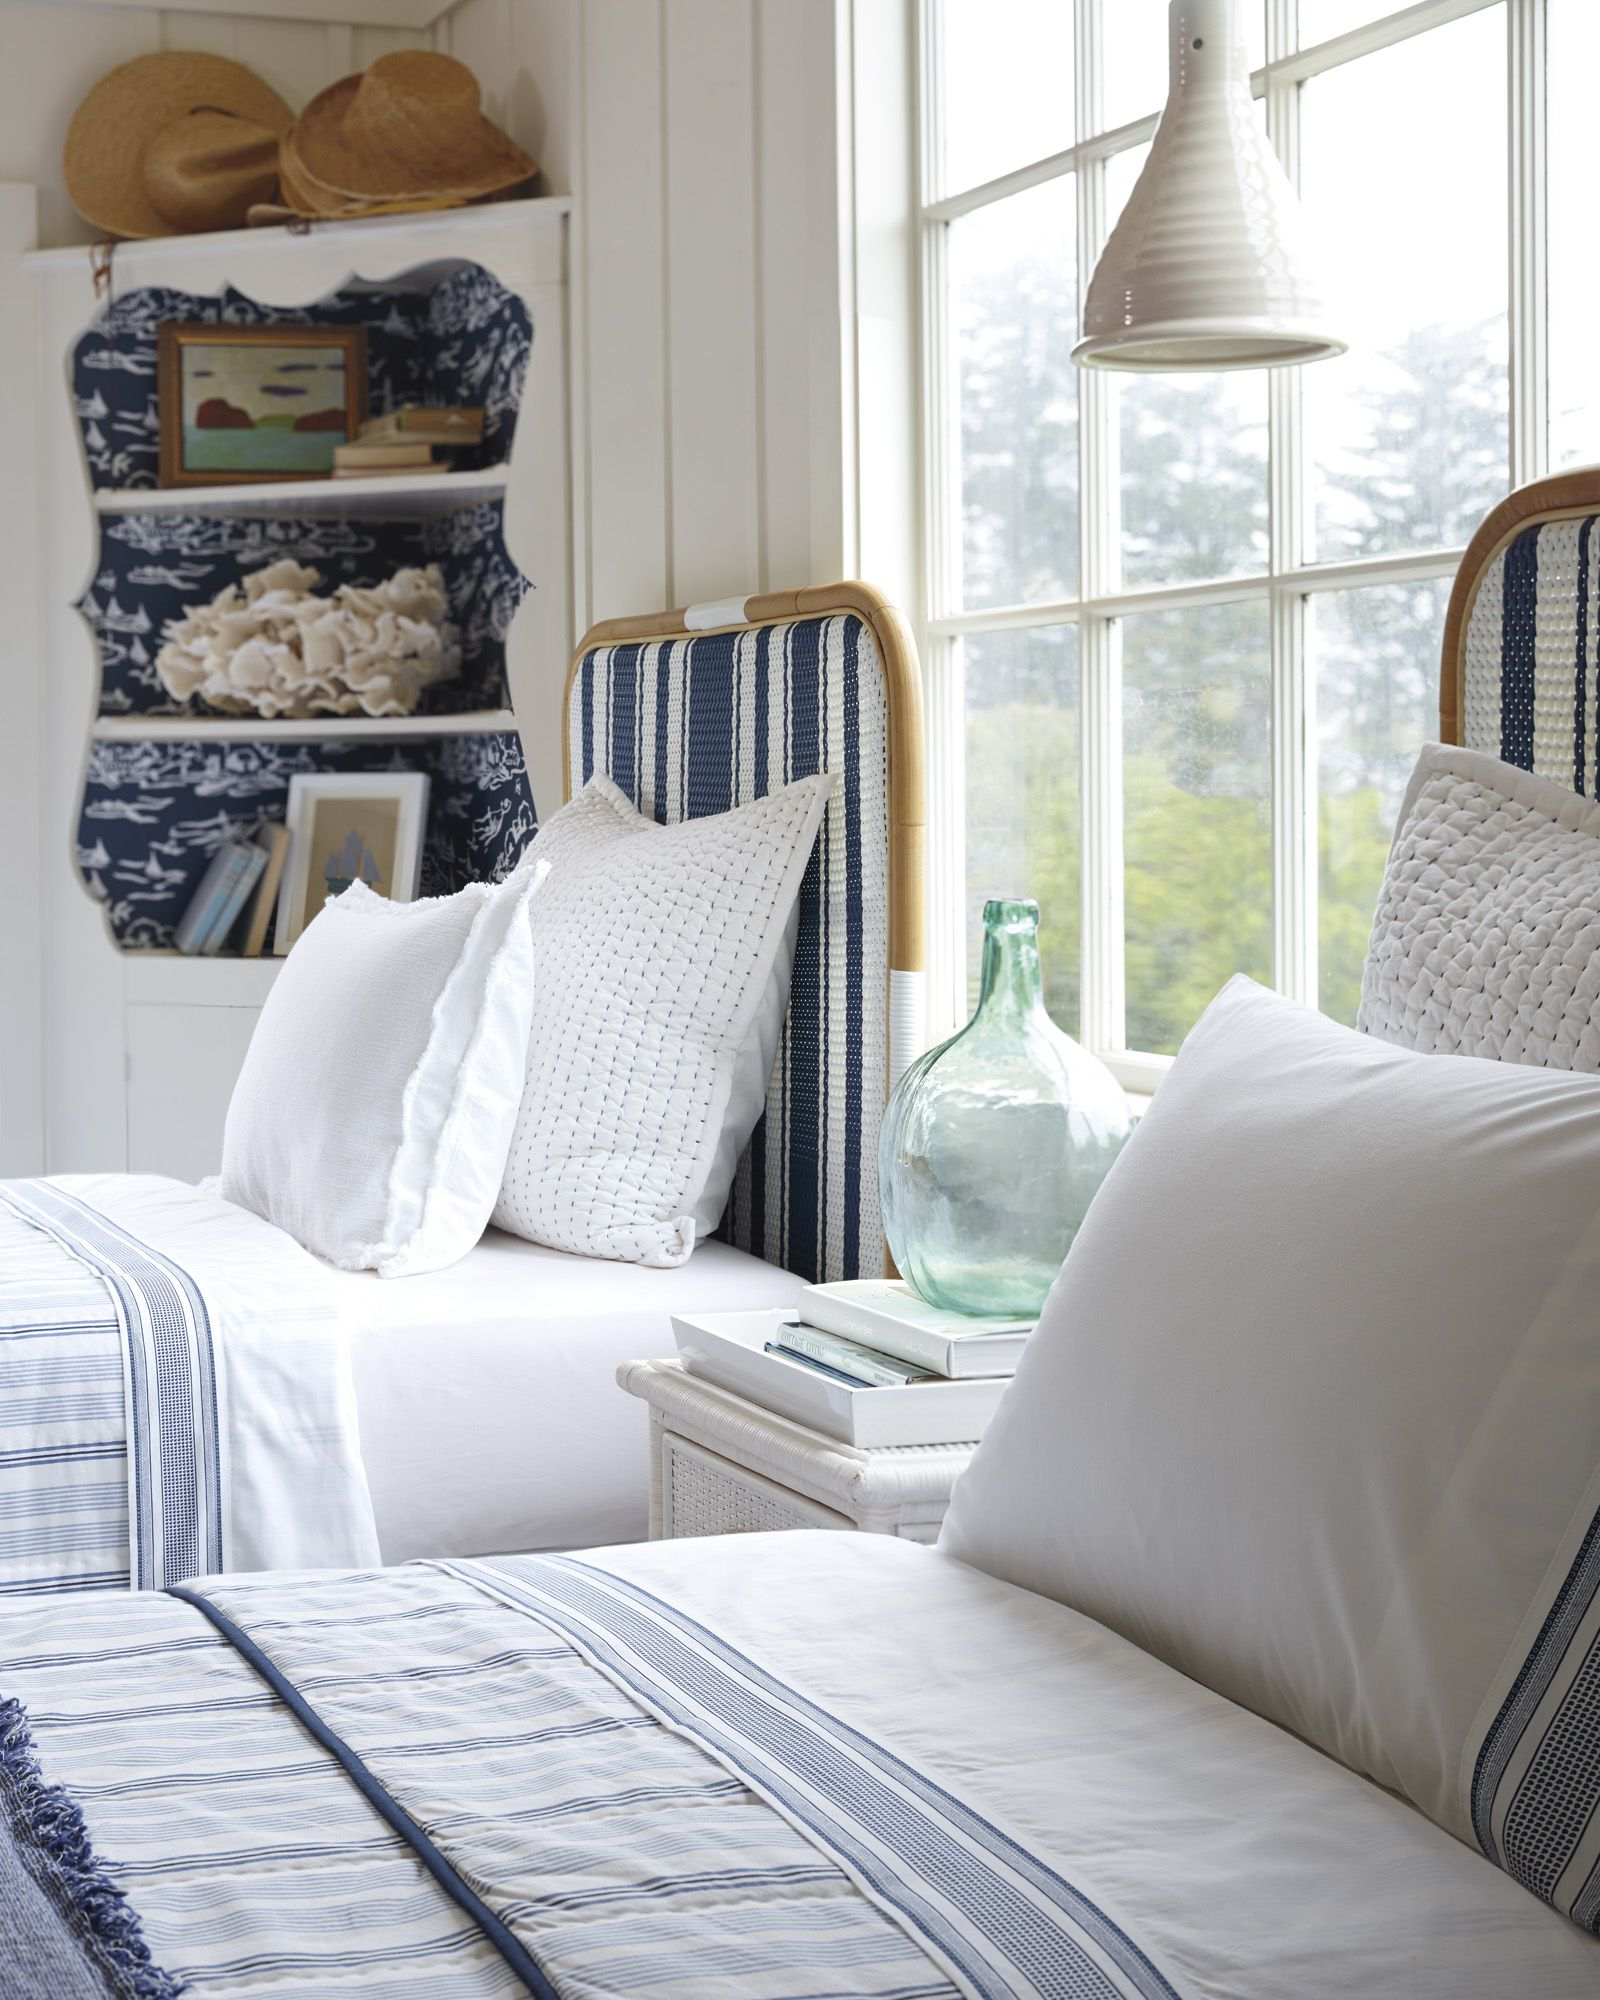 Good Twin Bed Decked Out In Navy U0026 White | Riviera Headboard Via Serena U0026 Lily